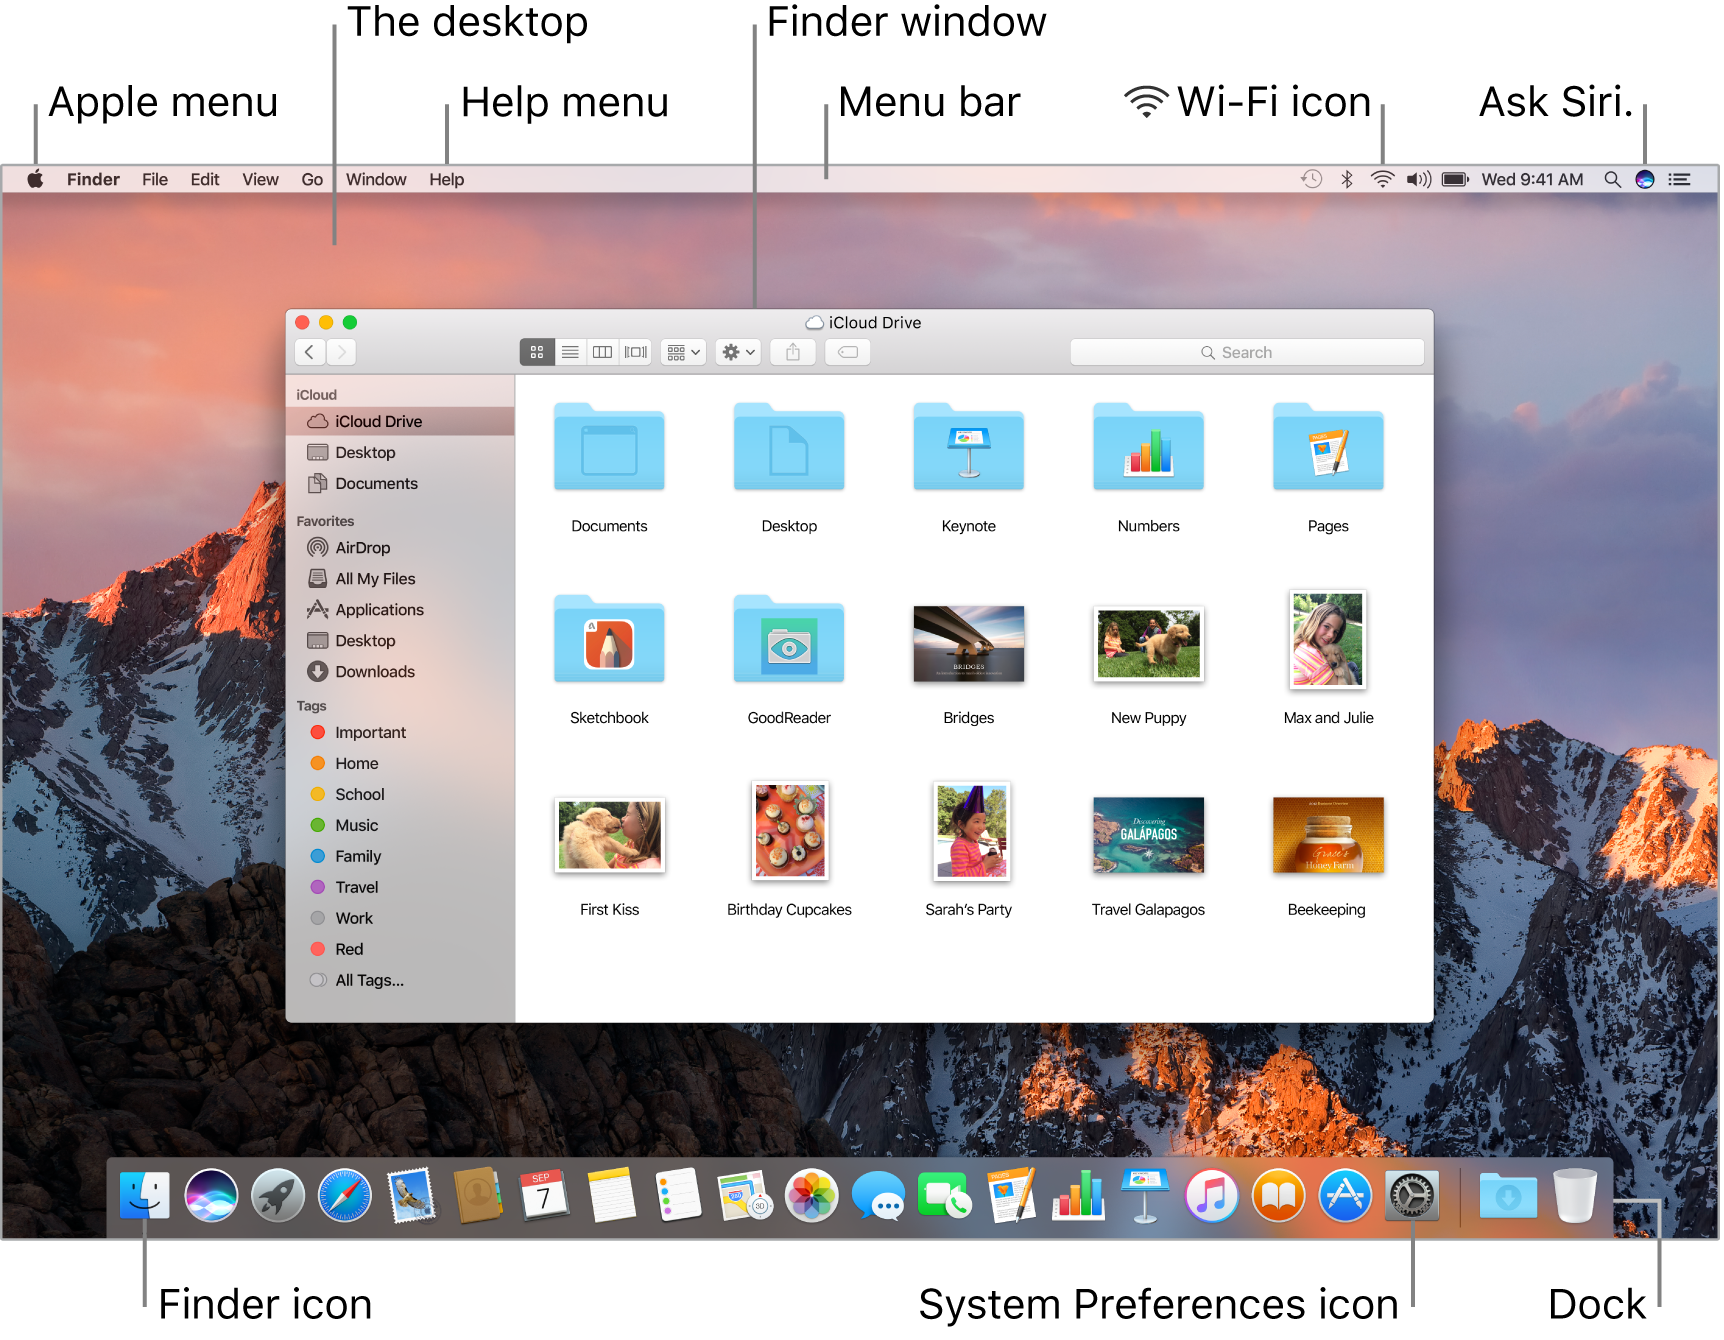 A MacBook Air screen calling out the Apple menu, desktop, Help menu, Finder window, menu bar, Wi-Fi status icon, Ask Siri icon, Finder icon, System Preferences icon, and the Dock.